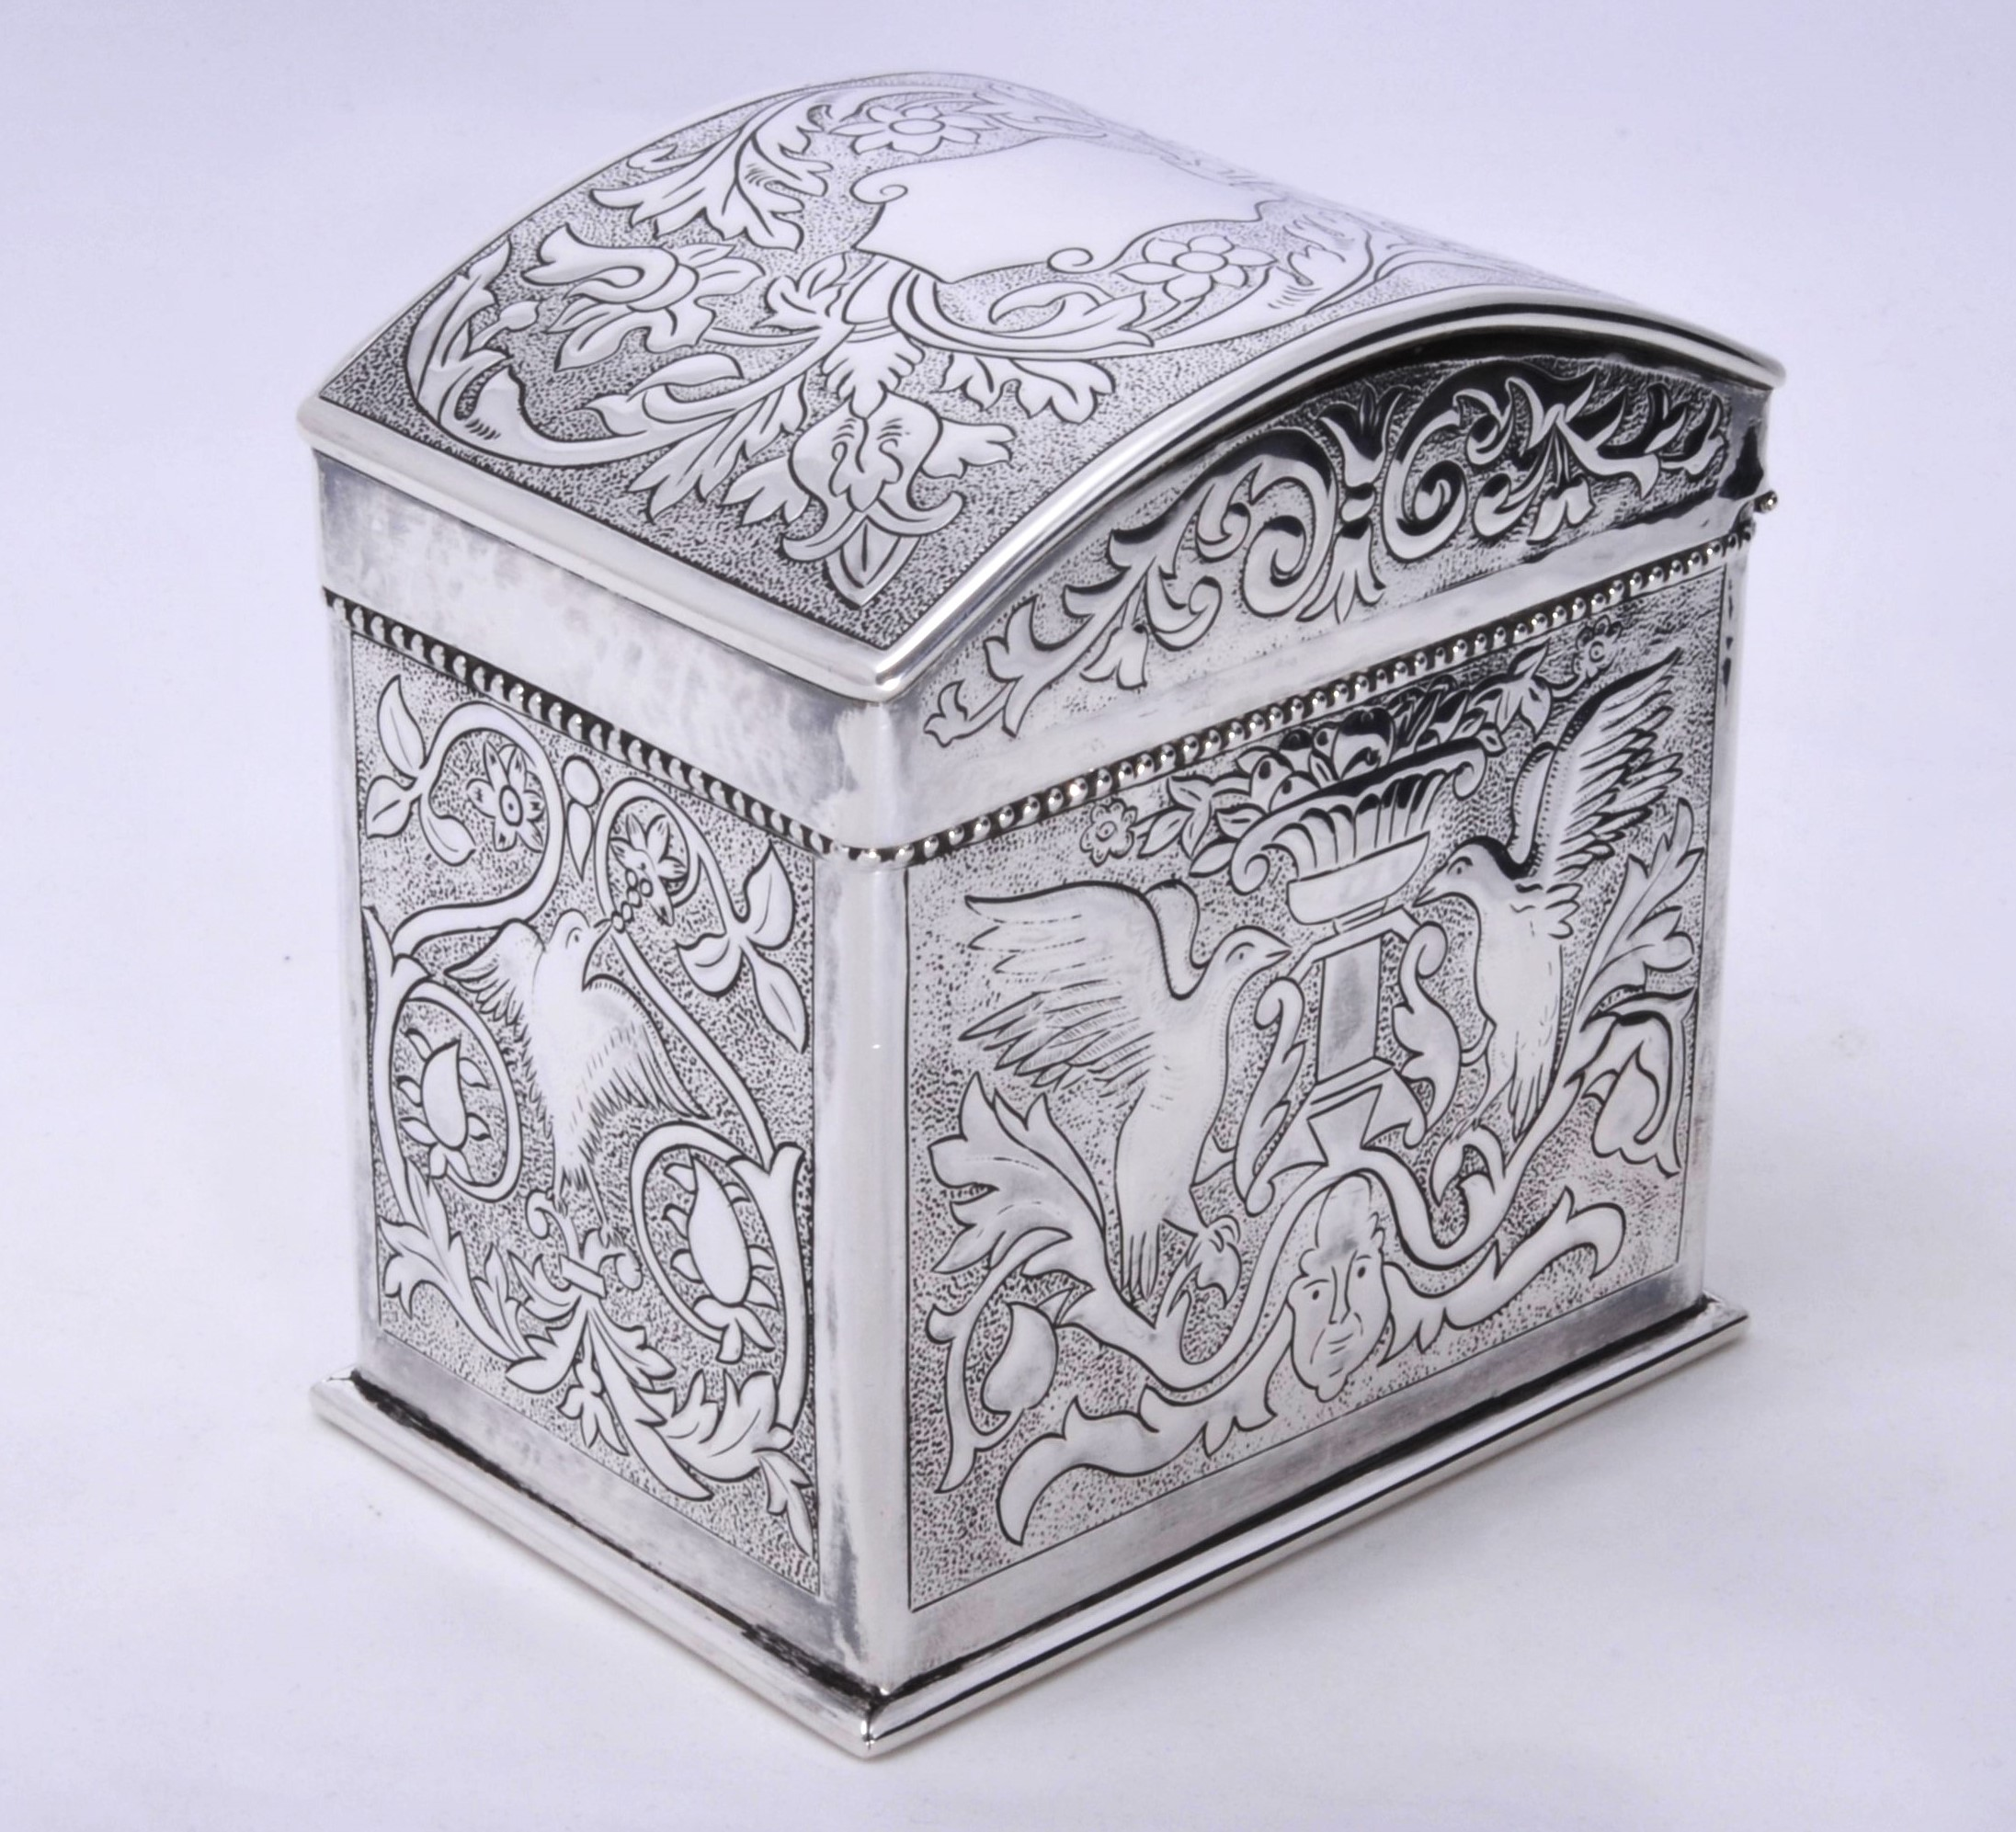 Keswick School of Industrial Arts silver caddy